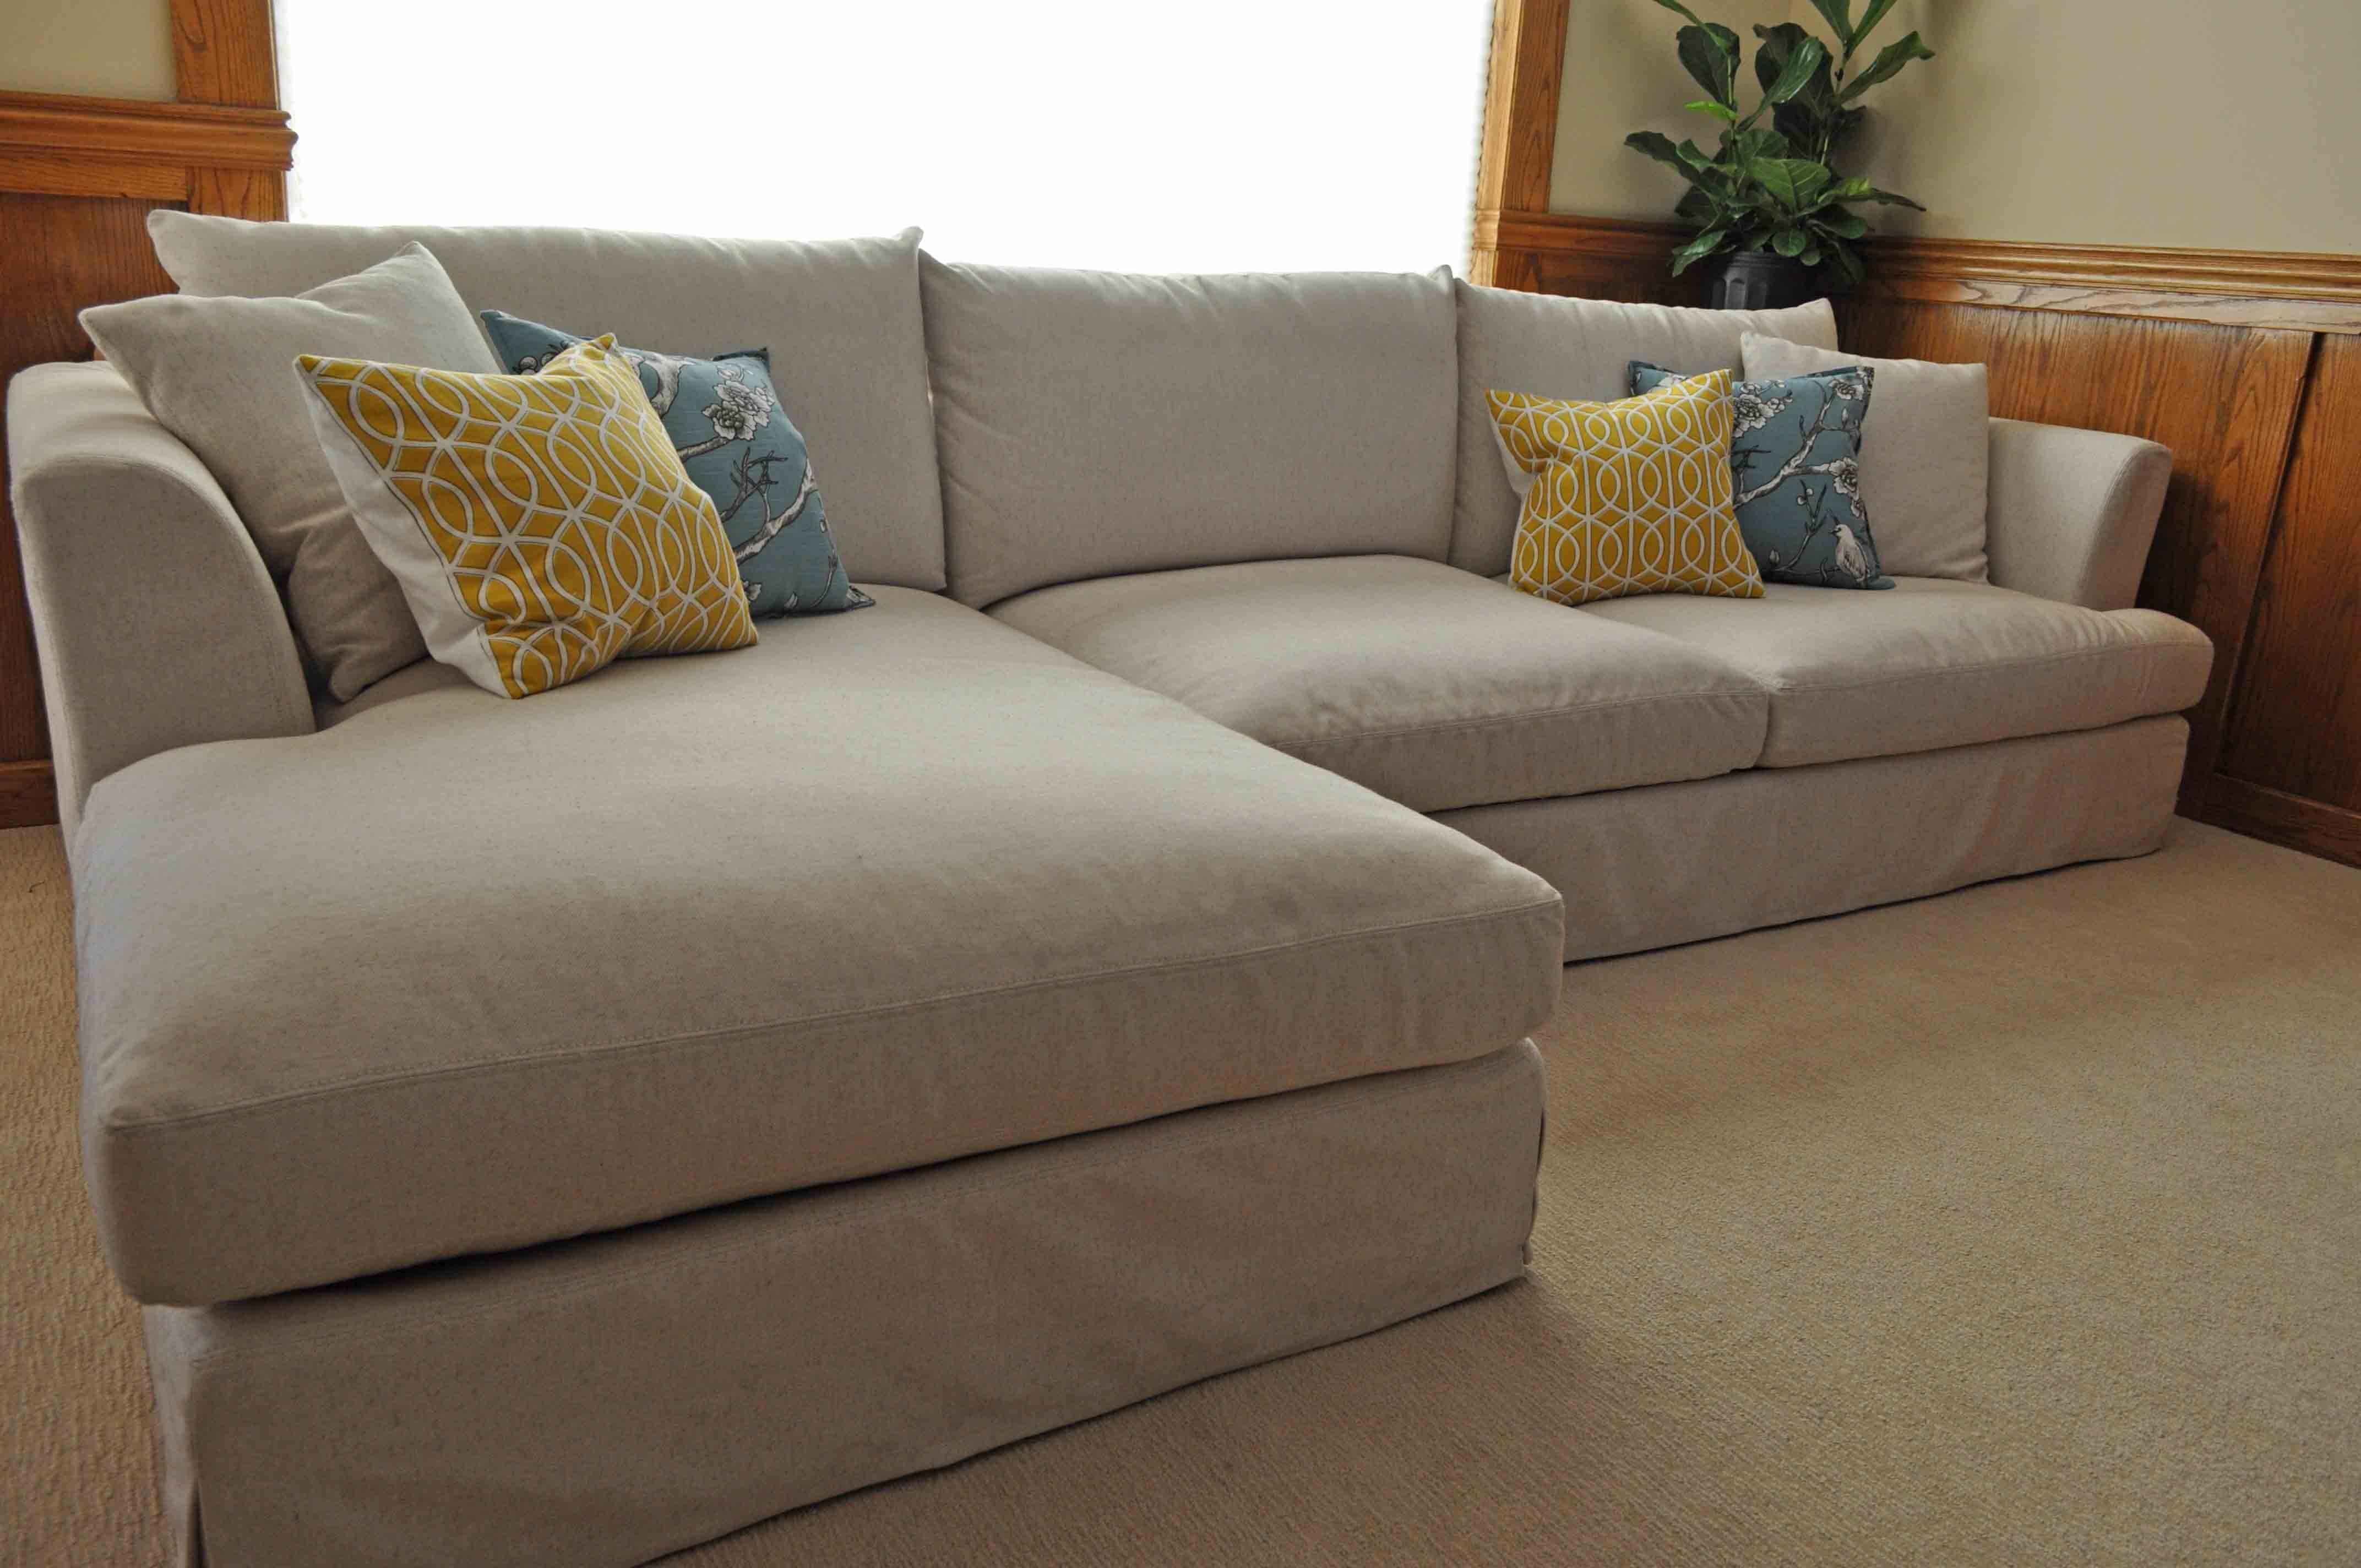 Widely Used Deep Cushion Sofas In Couch: Ideas Comfy Couches Cozy Couch Inflatable, Big Comfy (View 12 of 20)